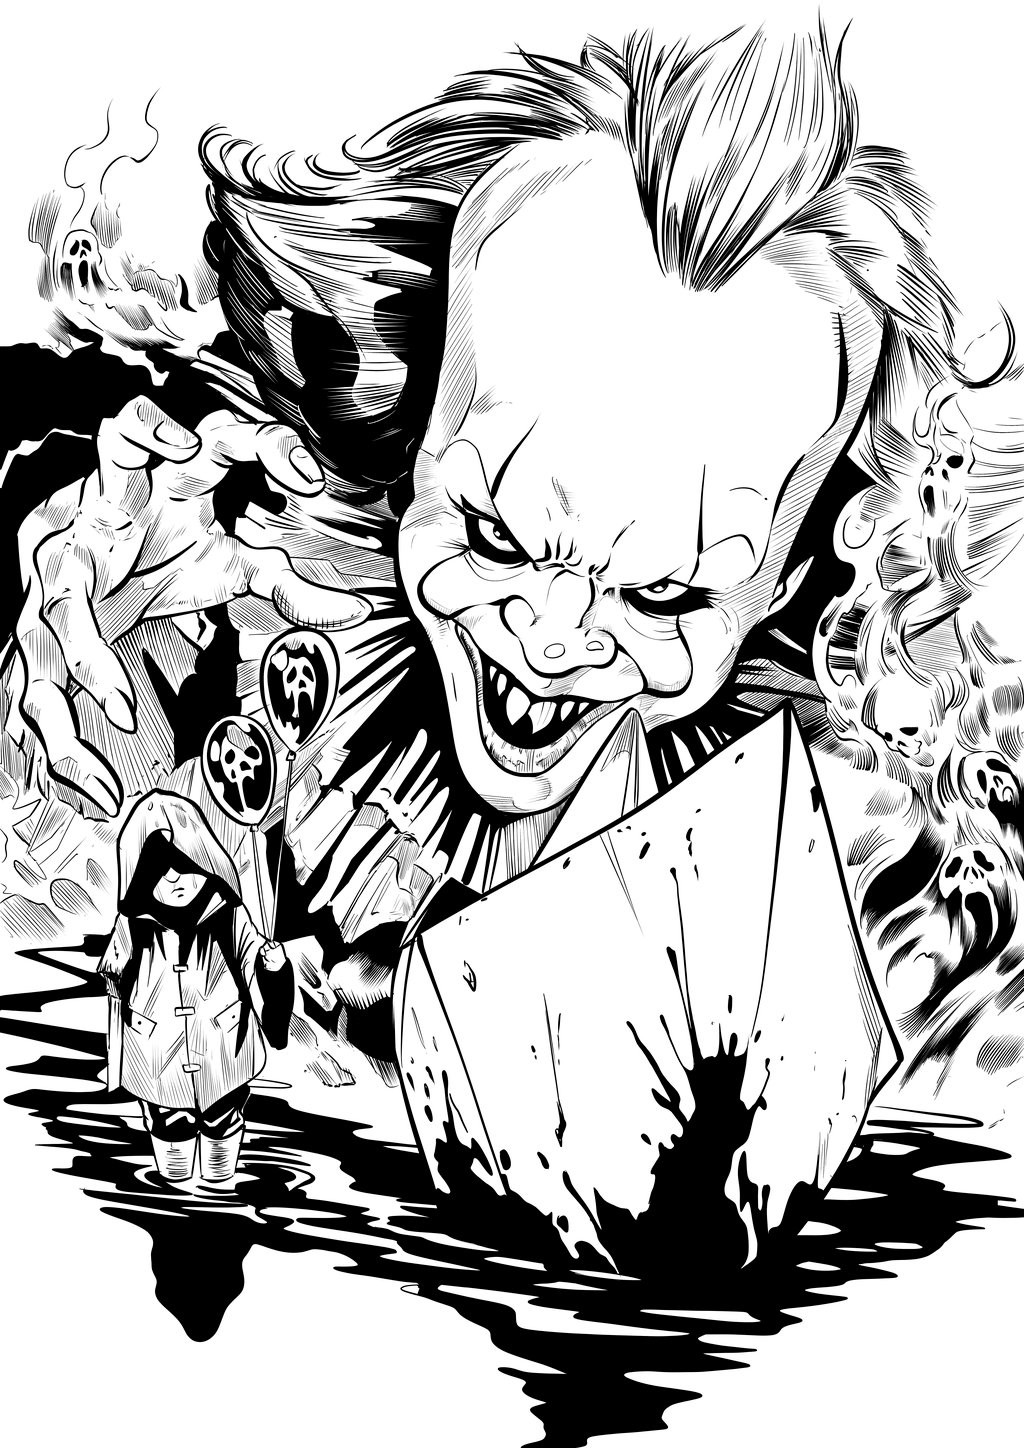 Matt james pennywise by lr